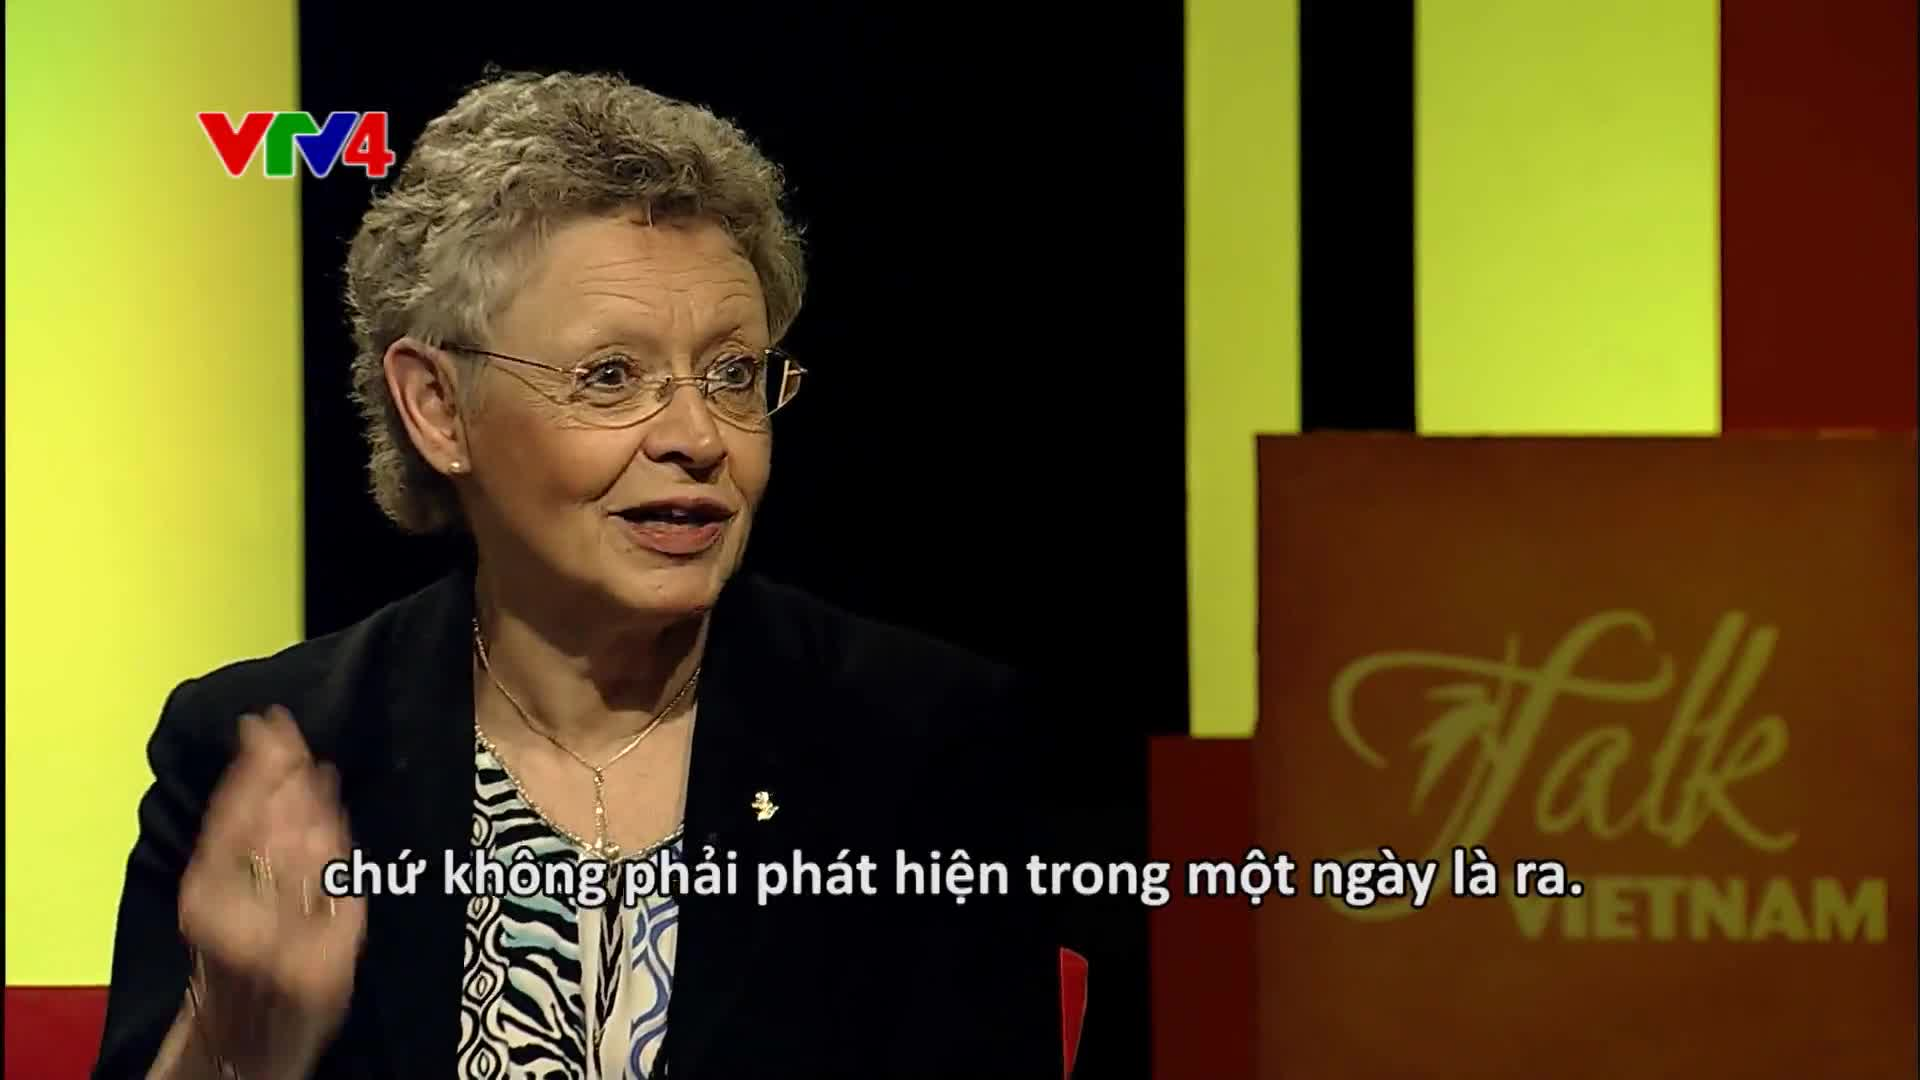 Talk Vietnam: Meet the science who won the Nobel Prize in Medicine in 2008